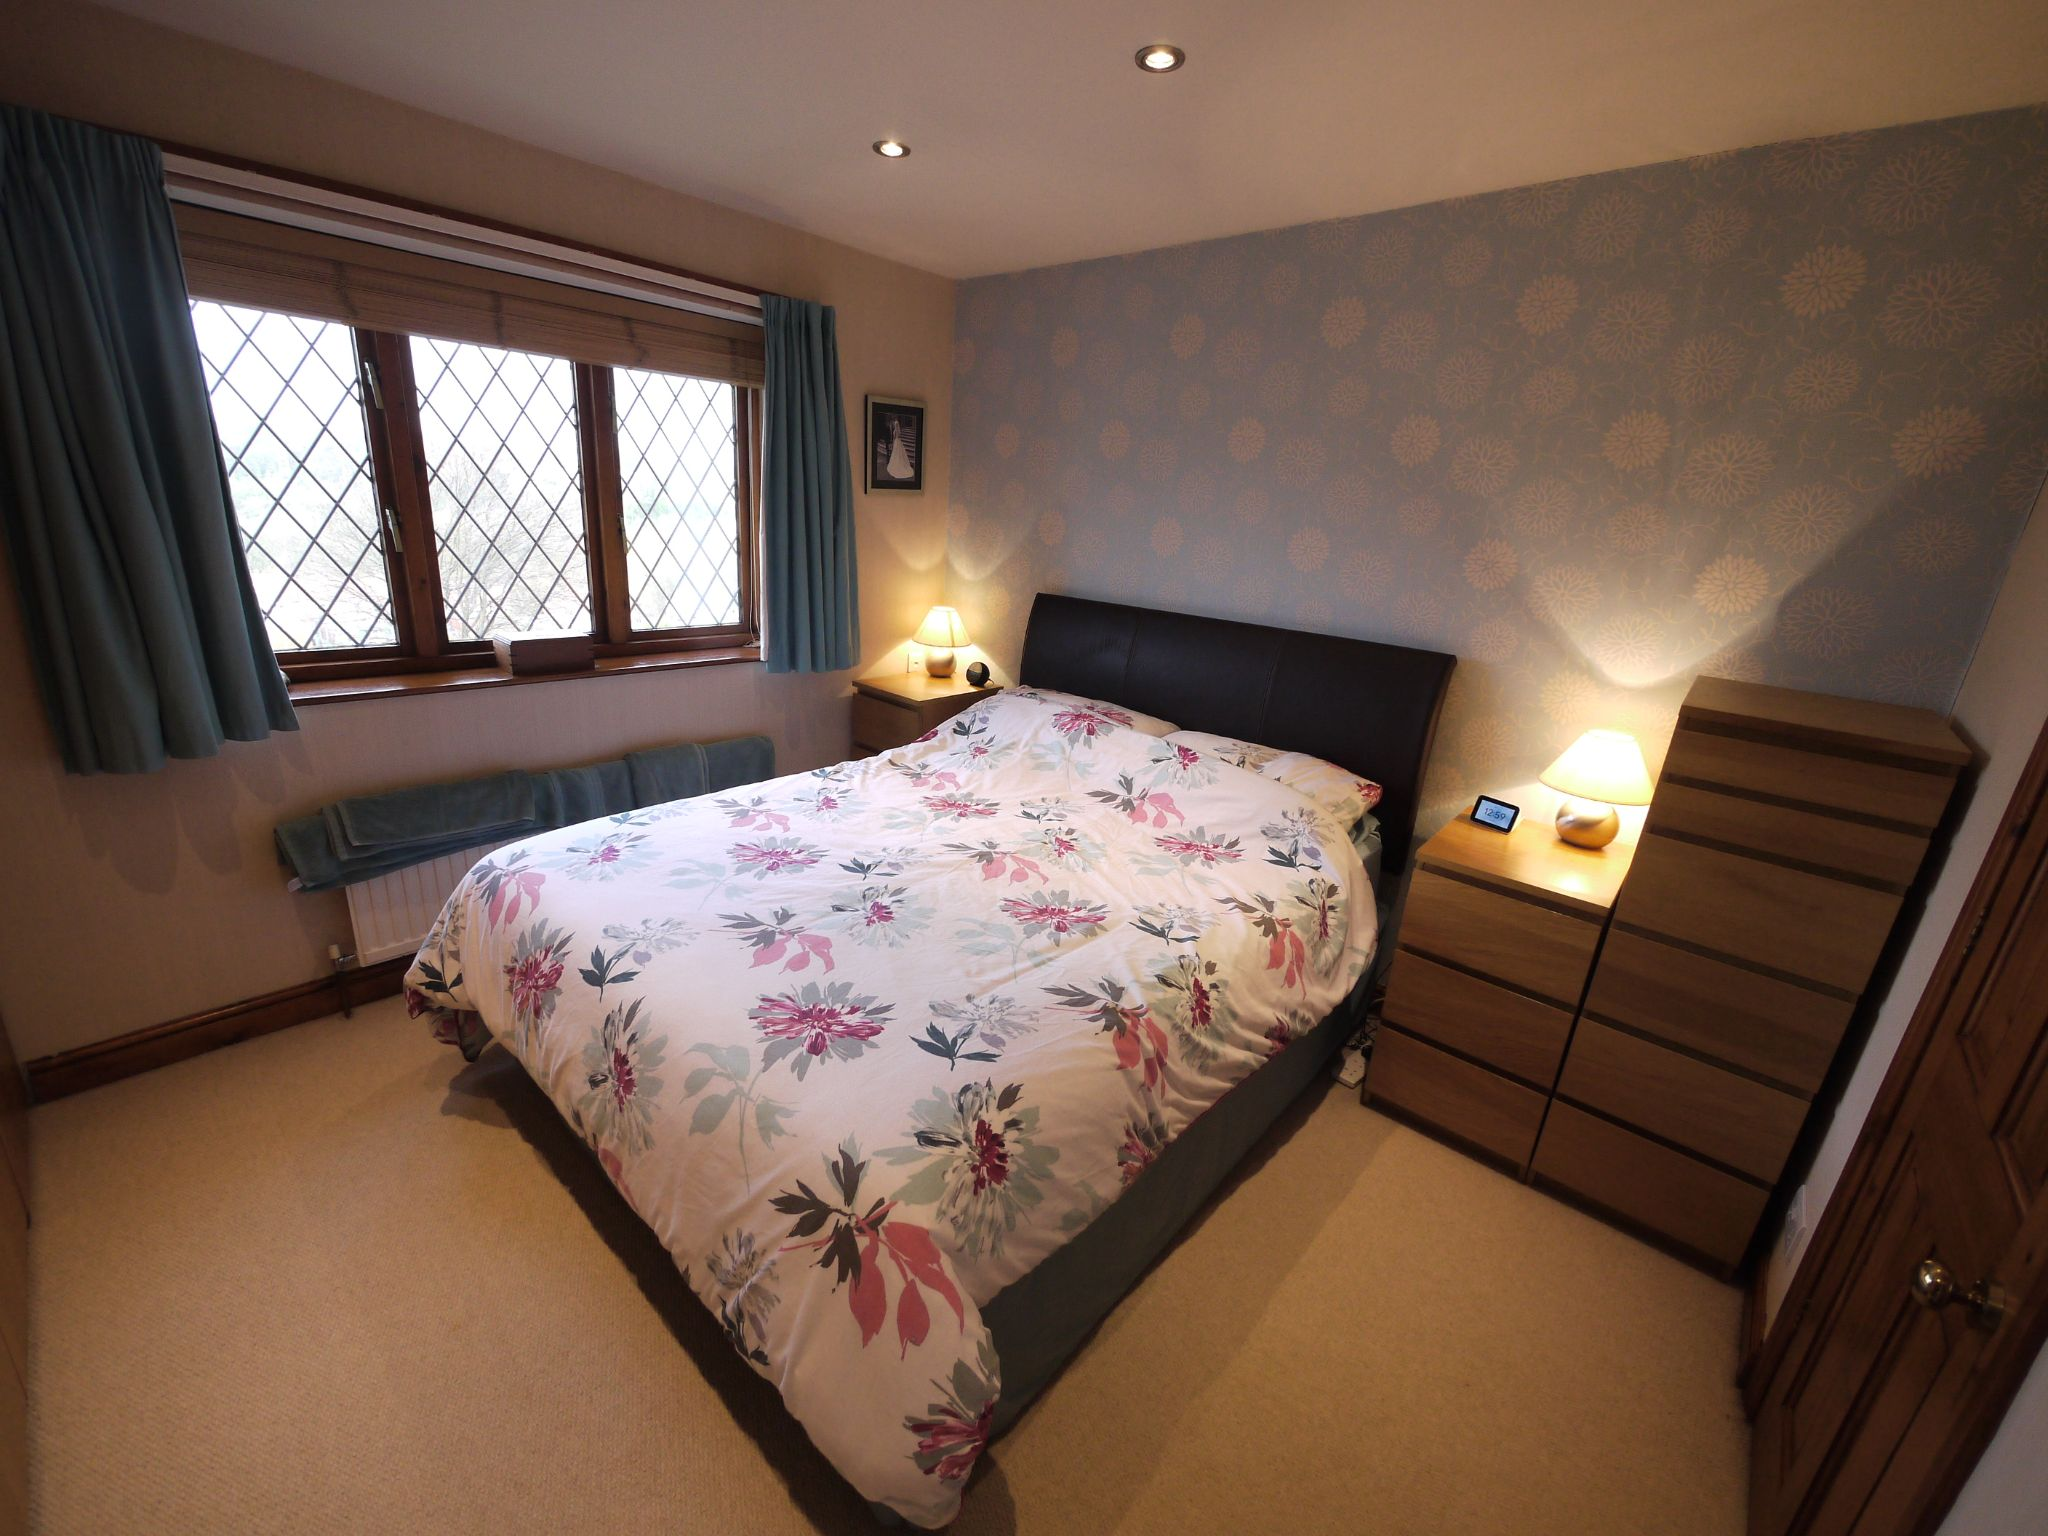 4 bedroom detached house SSTC in Brighouse - Bedroom 1.